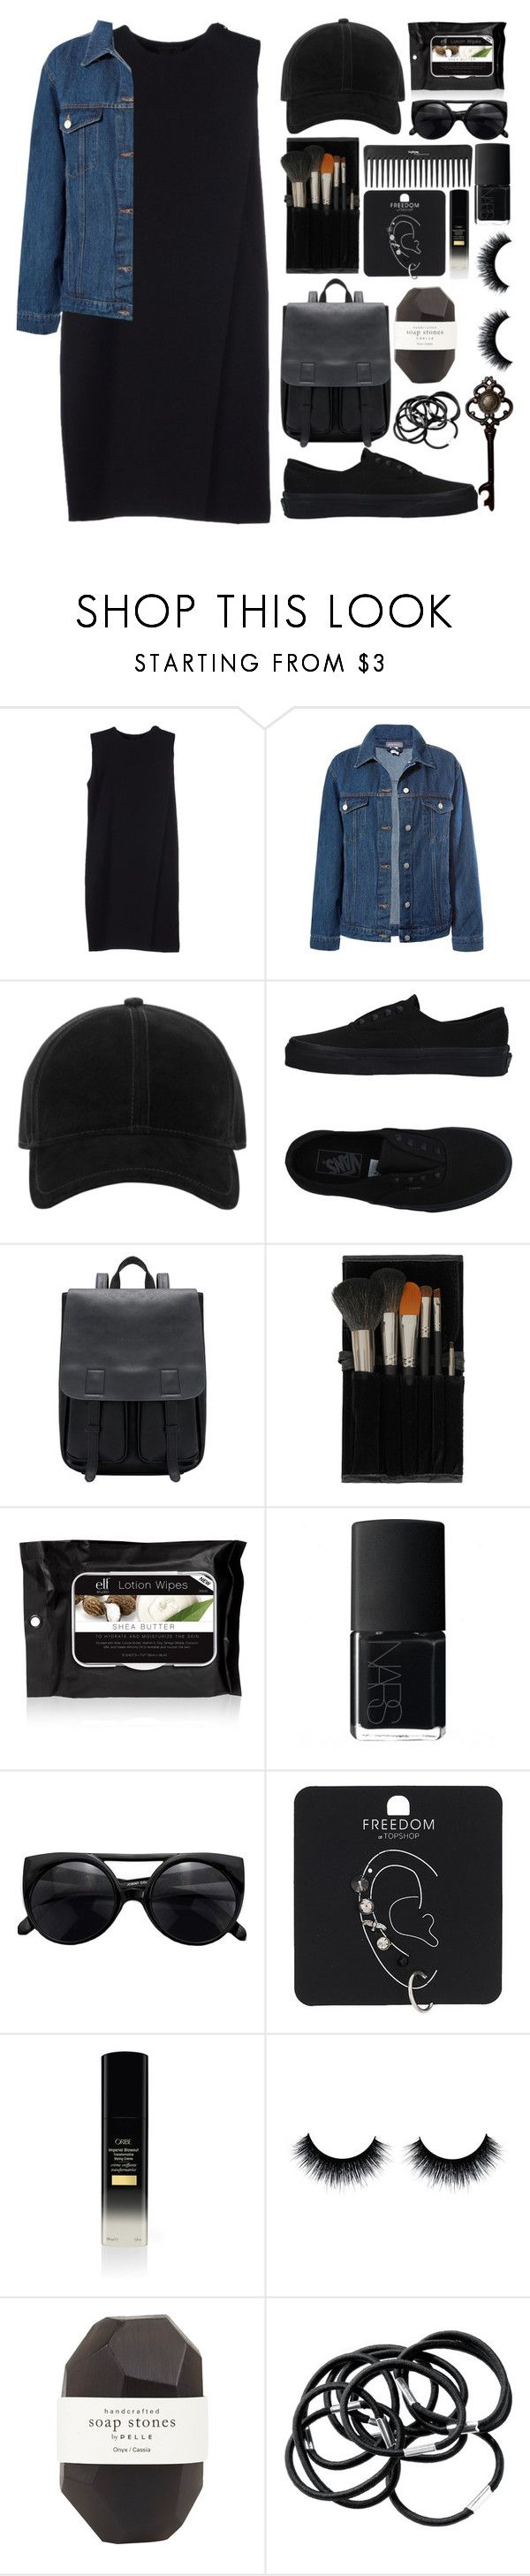 """""""b l a c k"""" by kind-at-heart ❤ liked on Polyvore featuring Alexander Wang, Sans Souci, rag & bone, Vans, Topshop, e.l.f., NARS Cosmetics, Sephora Collection, Pelle and H&M"""